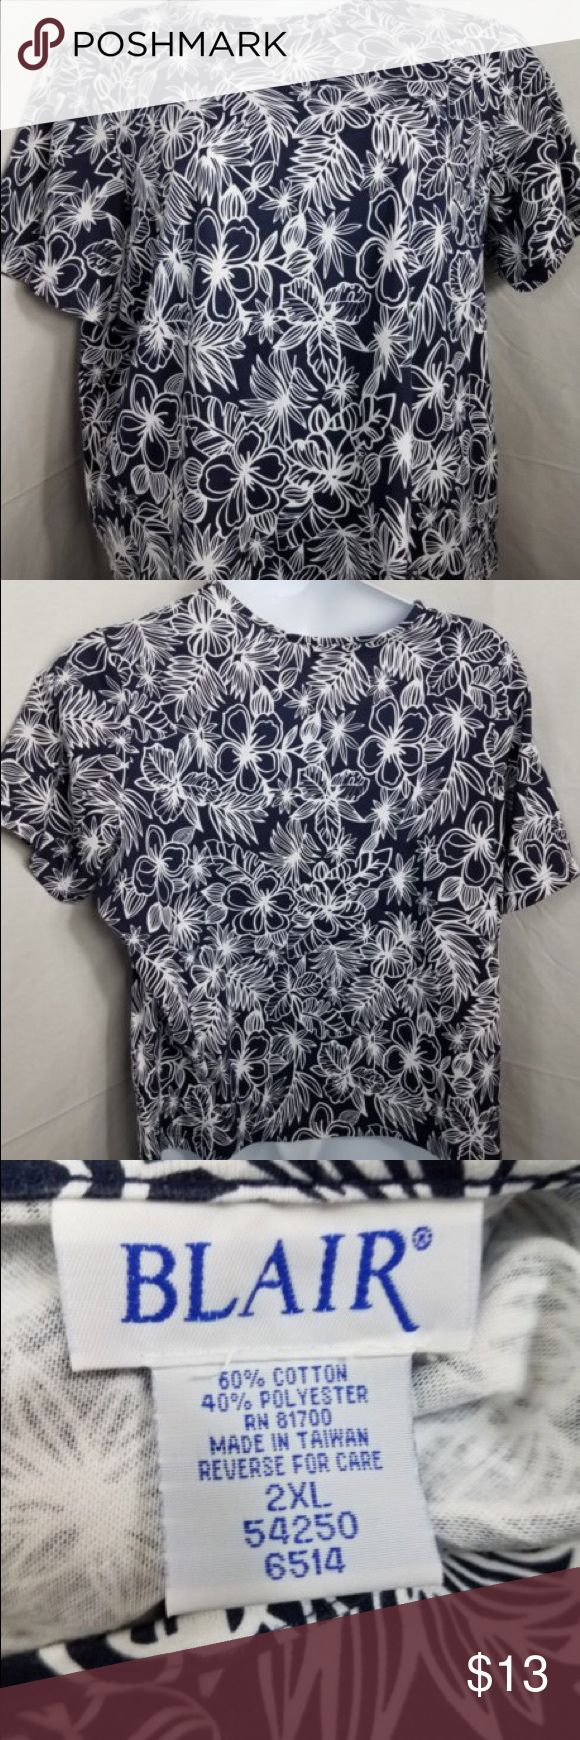 Blair Women's Size 2XL  Blue And White Blouse Chest-28.  Length-25.  Sleeve-10.  Inv-10 blair Tops Blouses